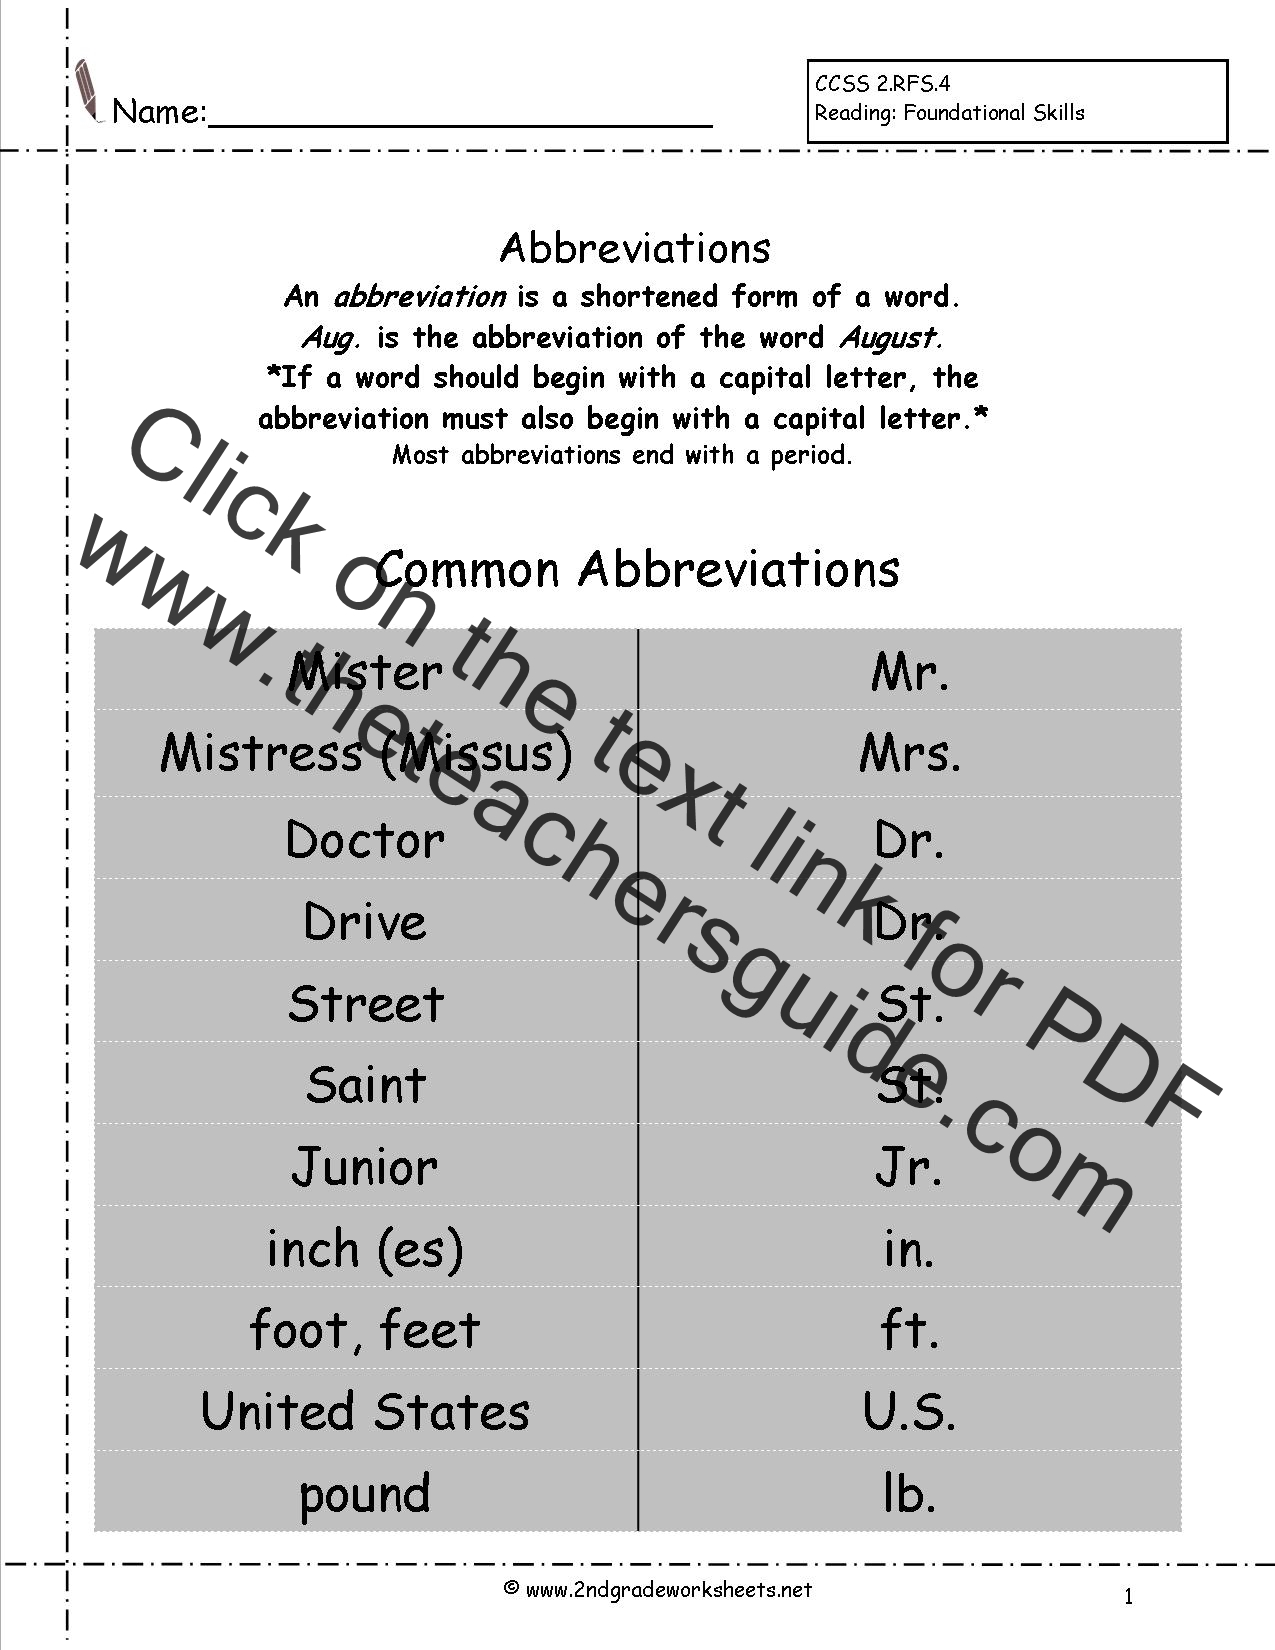 Free LanguageGrammar Worksheets and Printouts – 2nd Grade Adjective Worksheets